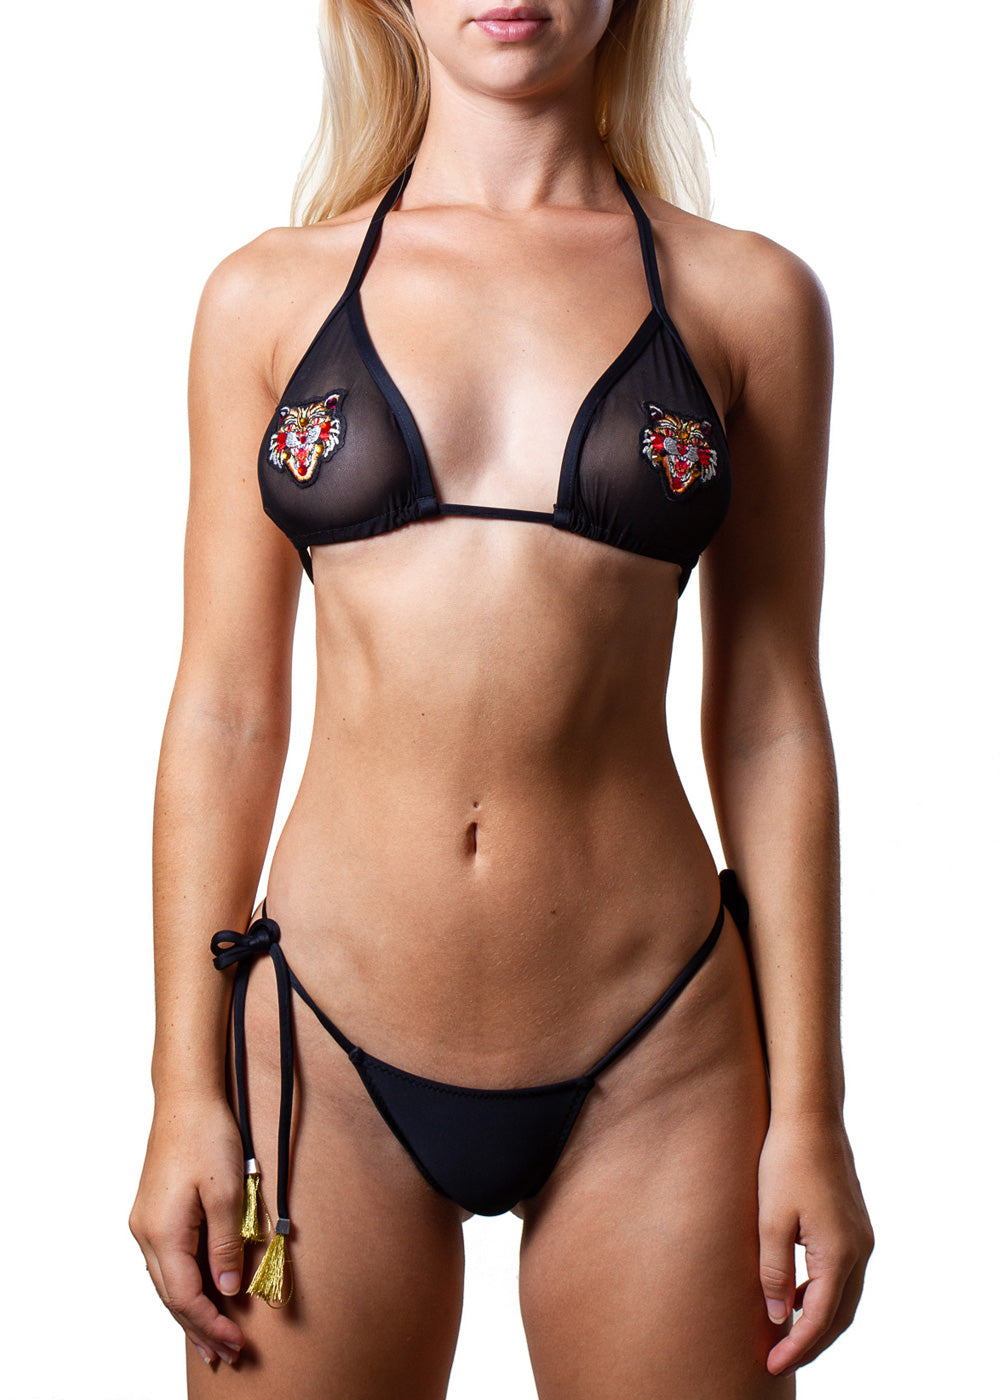 Maanu sheer mesh embroidered black bikini top